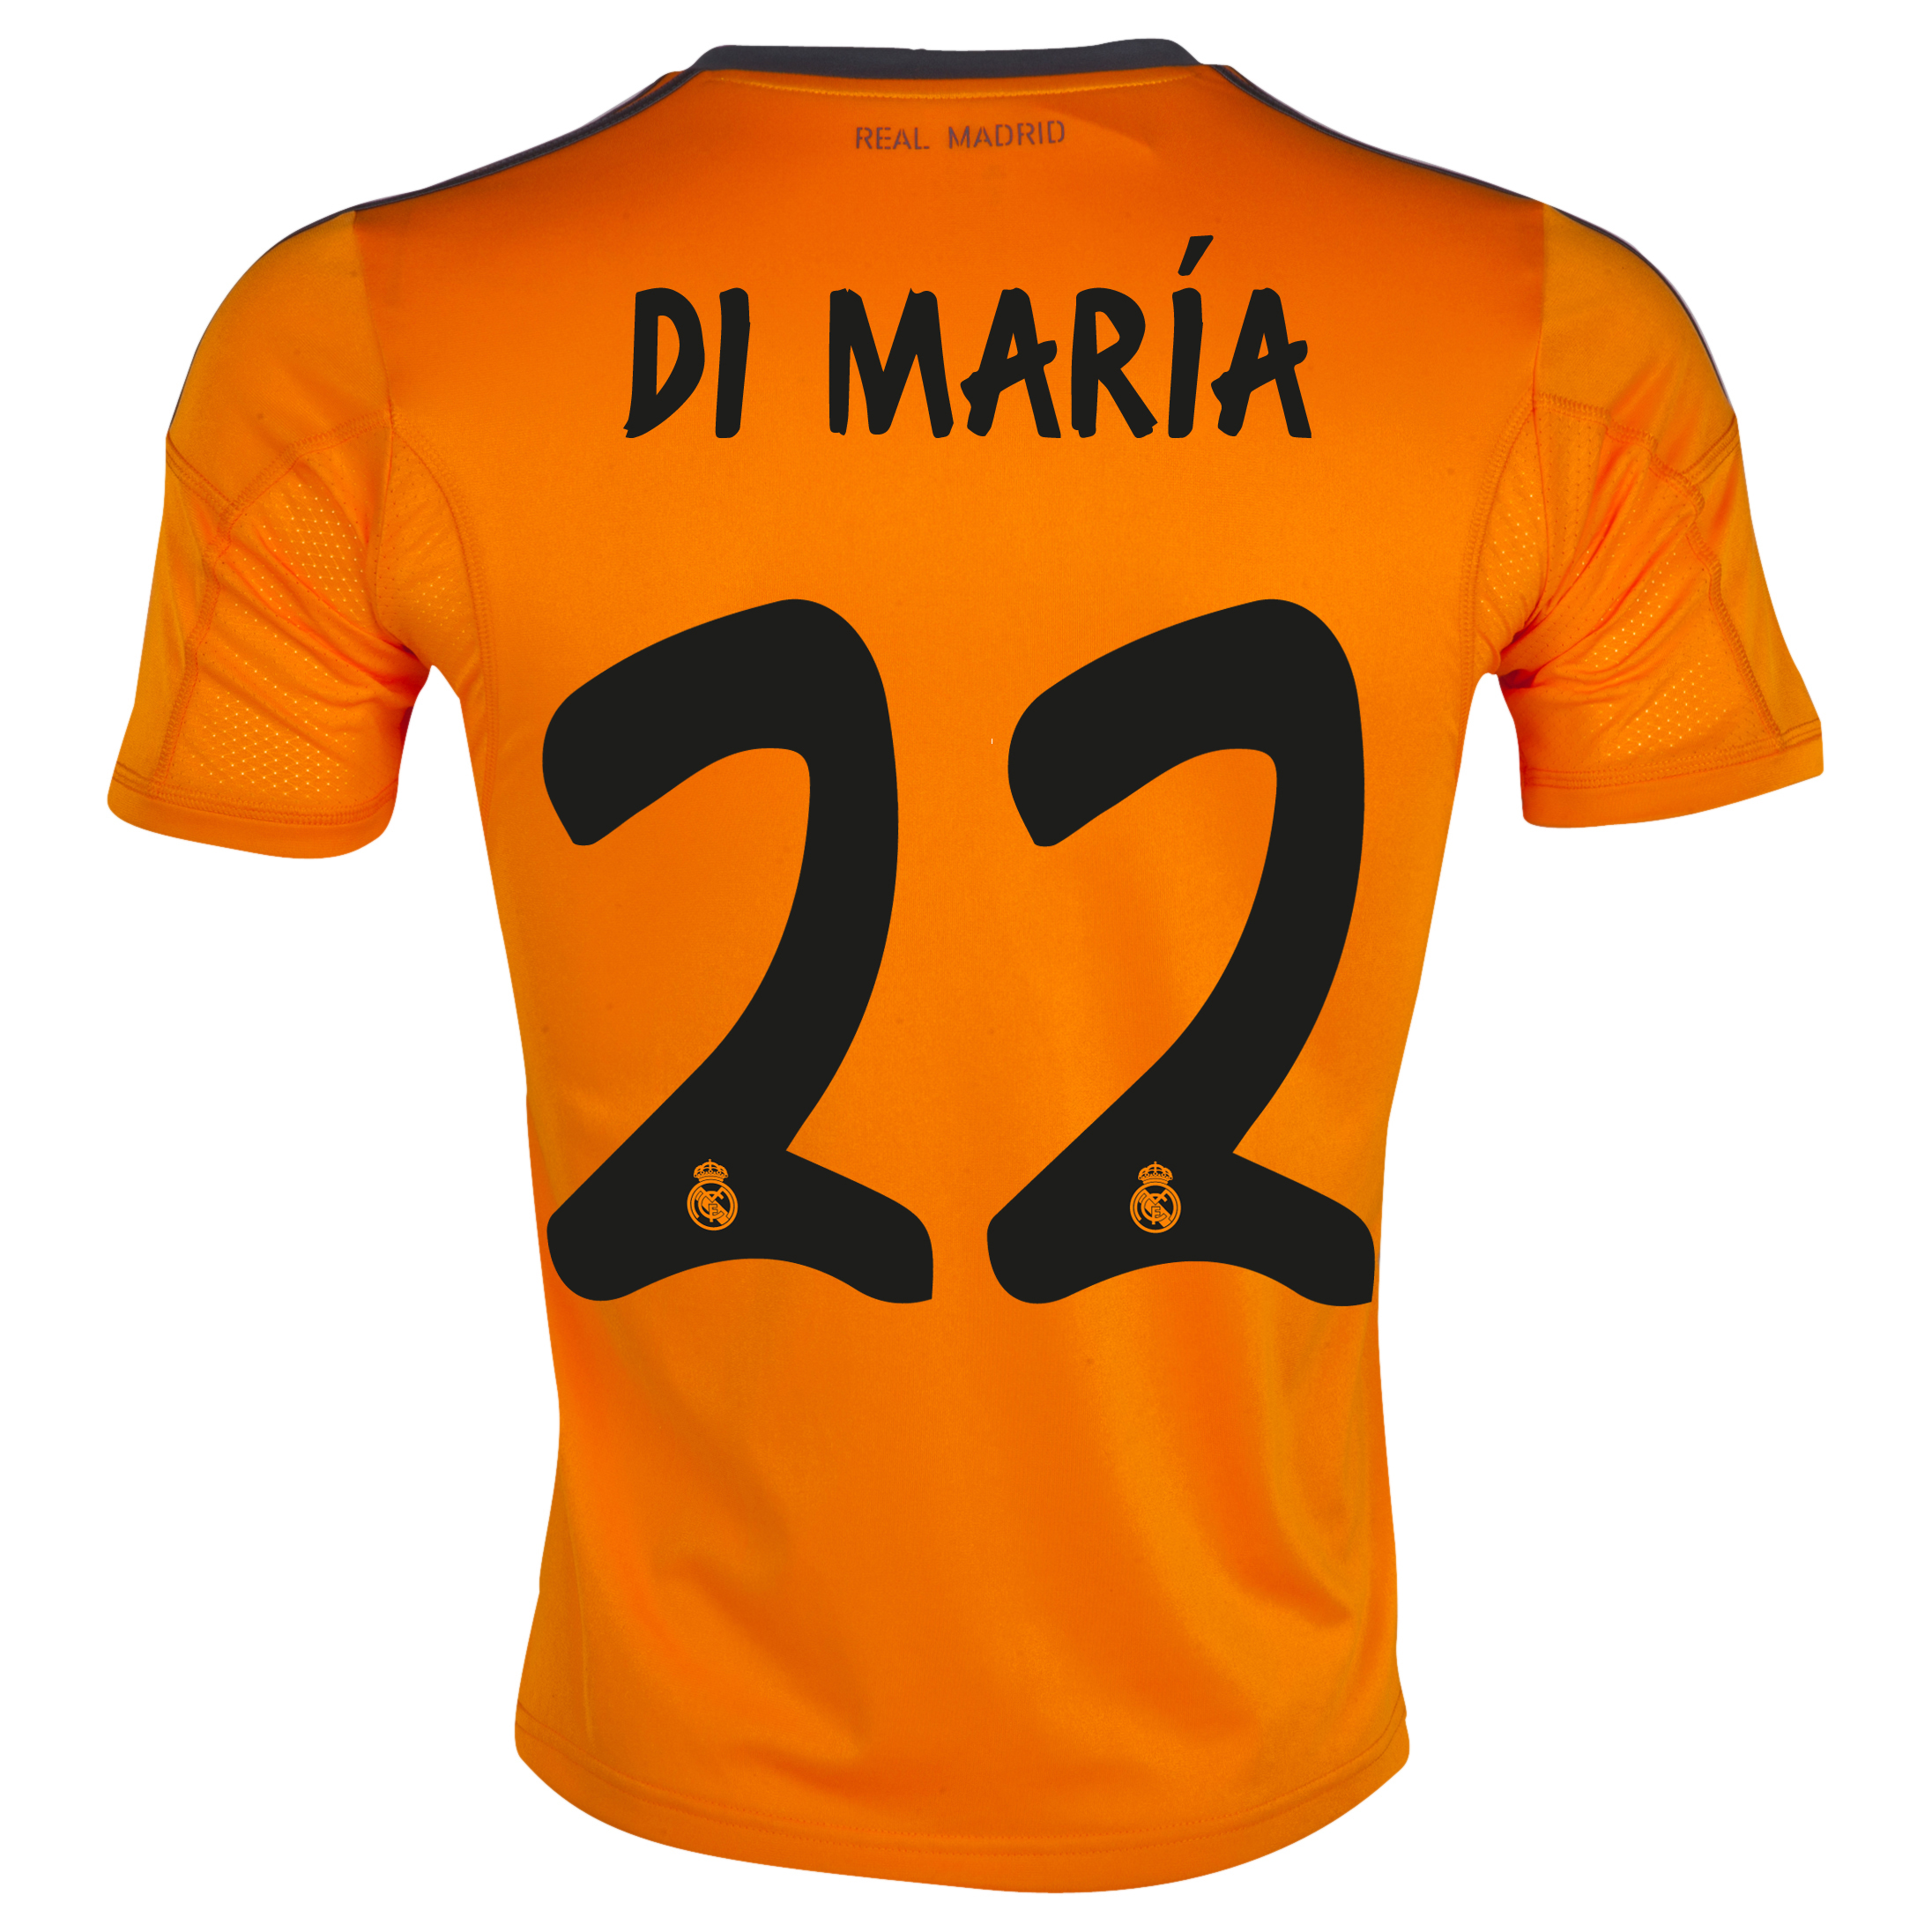 Real Madrid Third Shirt 2013/14 with Di María 22 printing